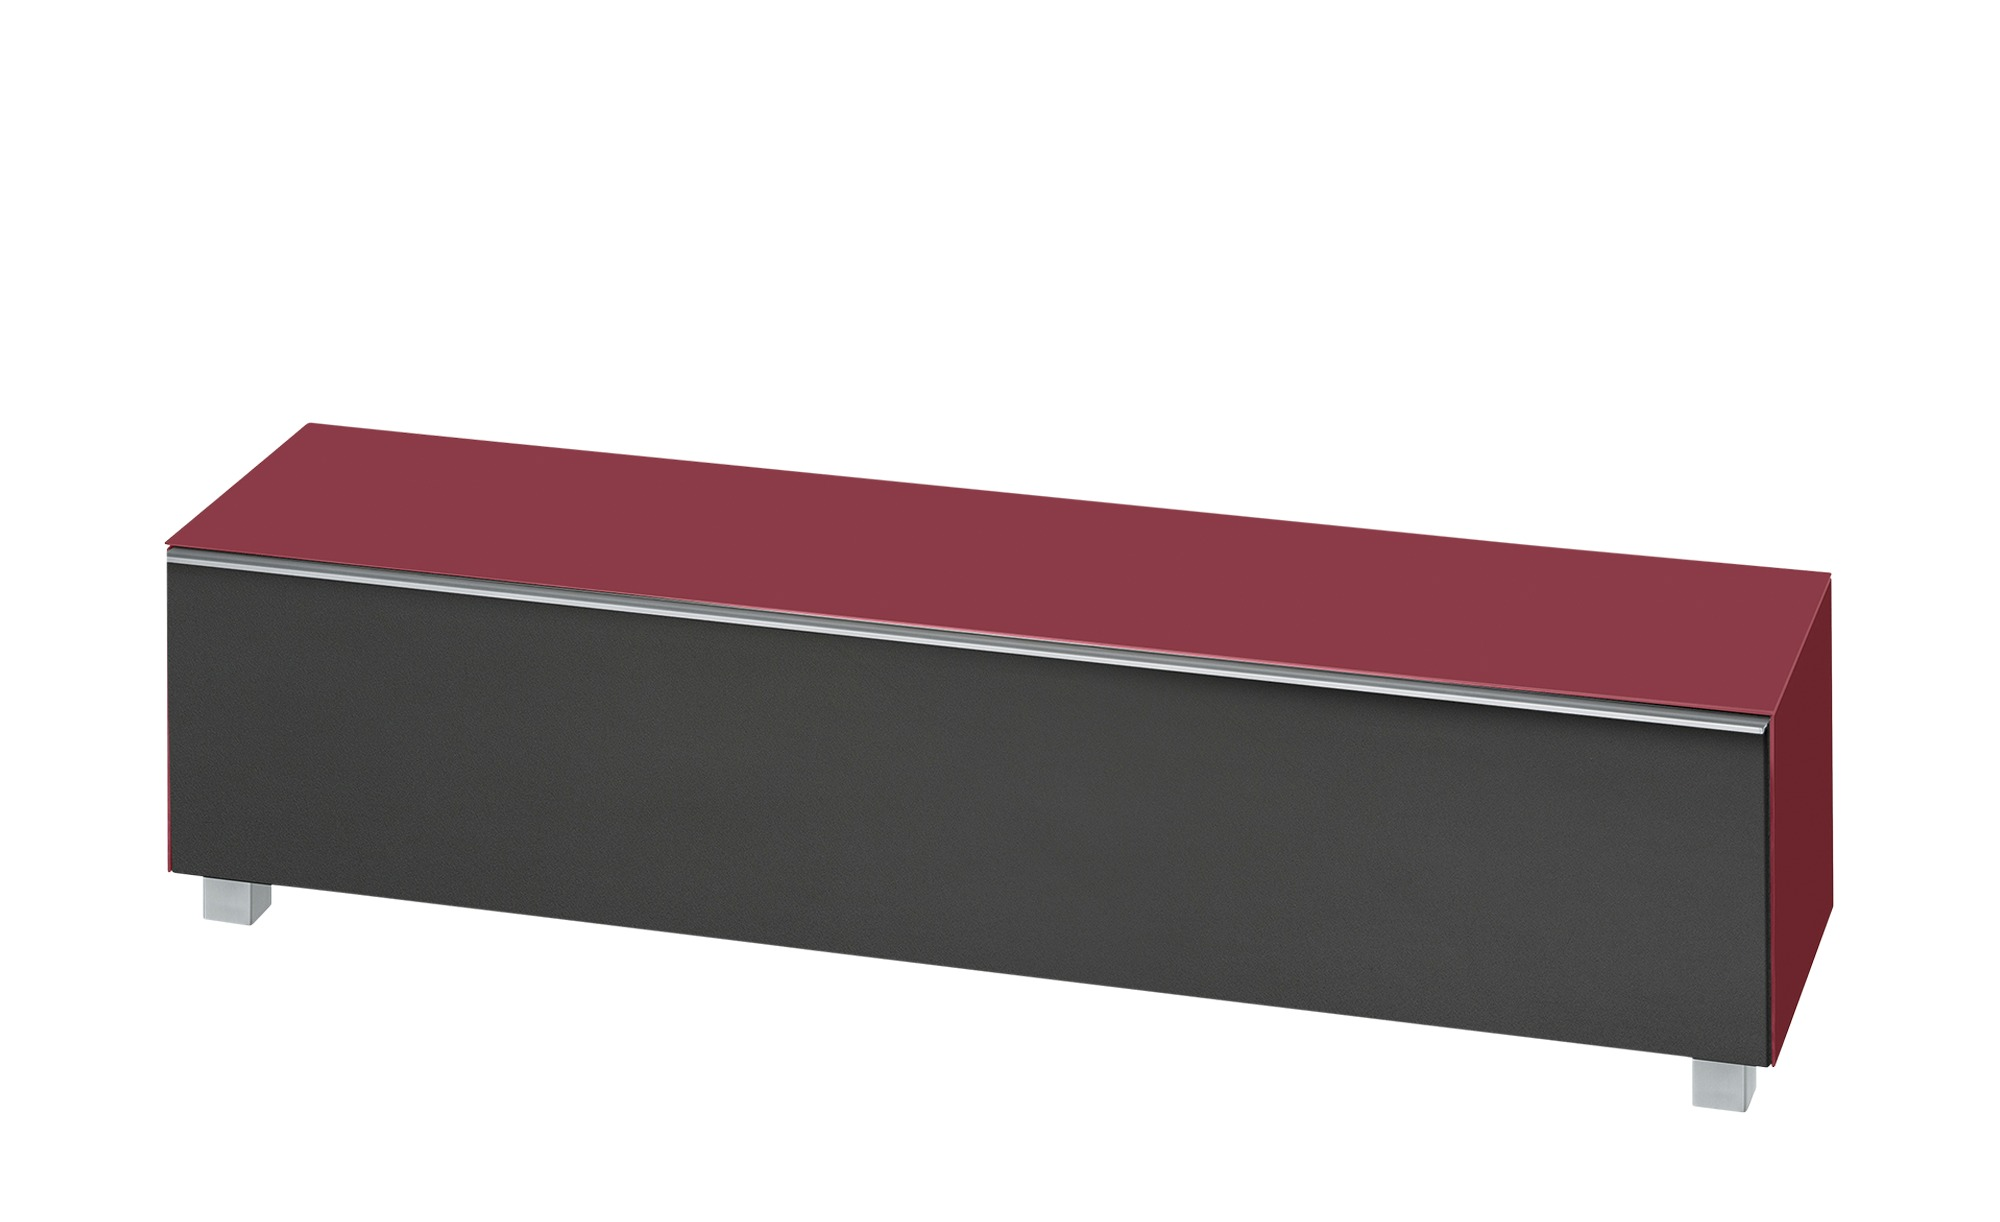 lowboard soundbase l breite 180 cm h he 43 cm rot online kaufen bei woonio. Black Bedroom Furniture Sets. Home Design Ideas